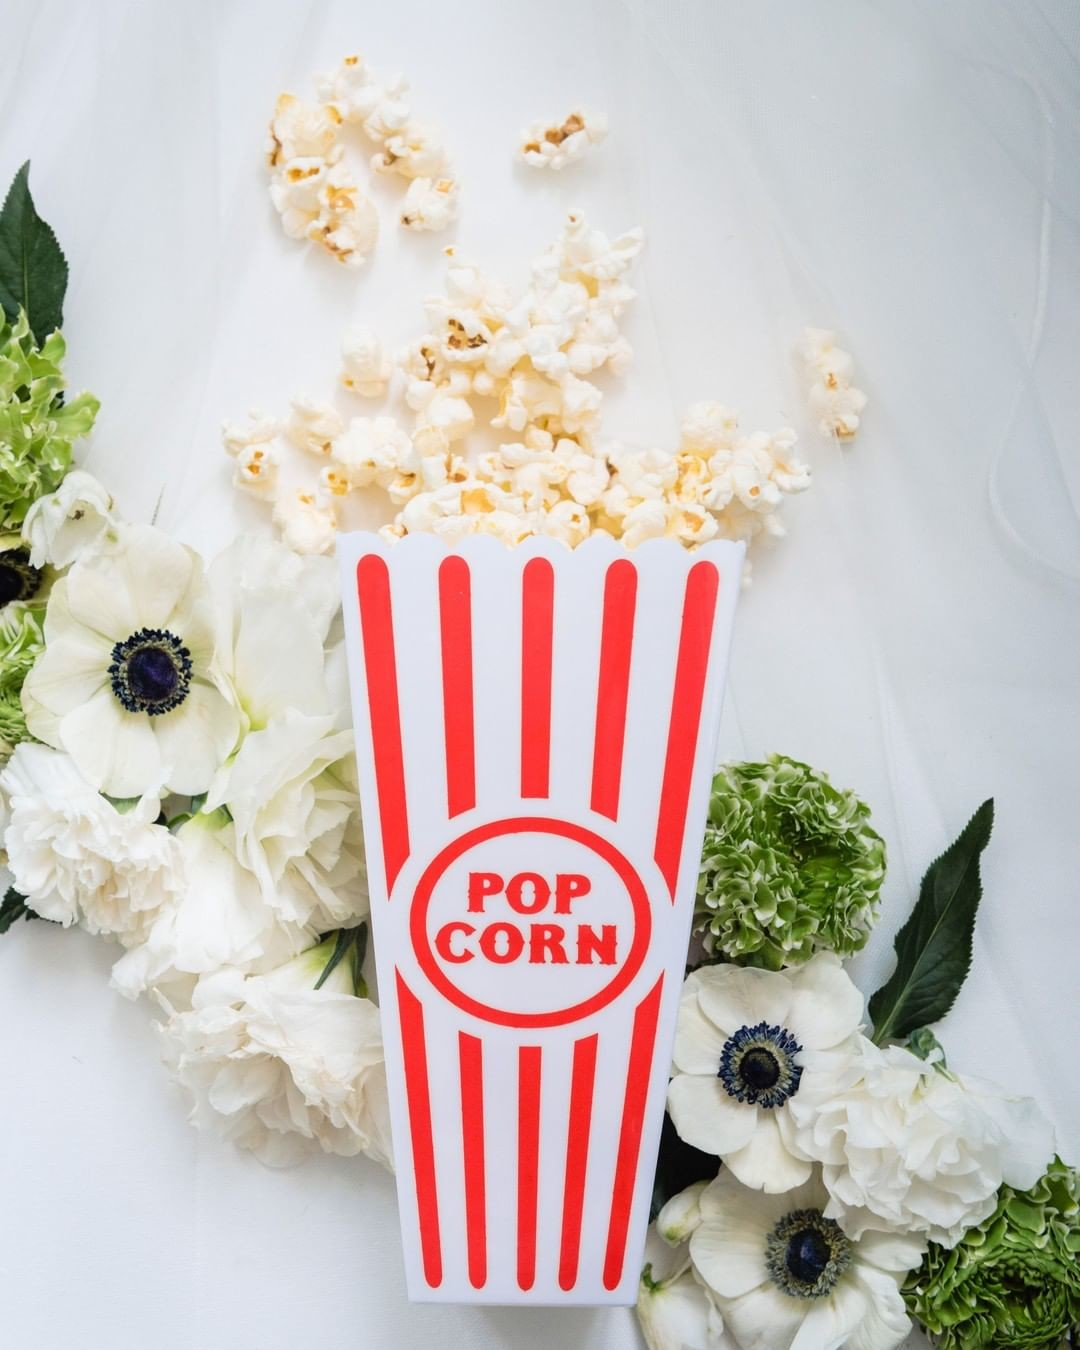 Freshly popped Pop Corn is a super fun hors d'oeuvres that this couple chose to show off their love for movies!⁣